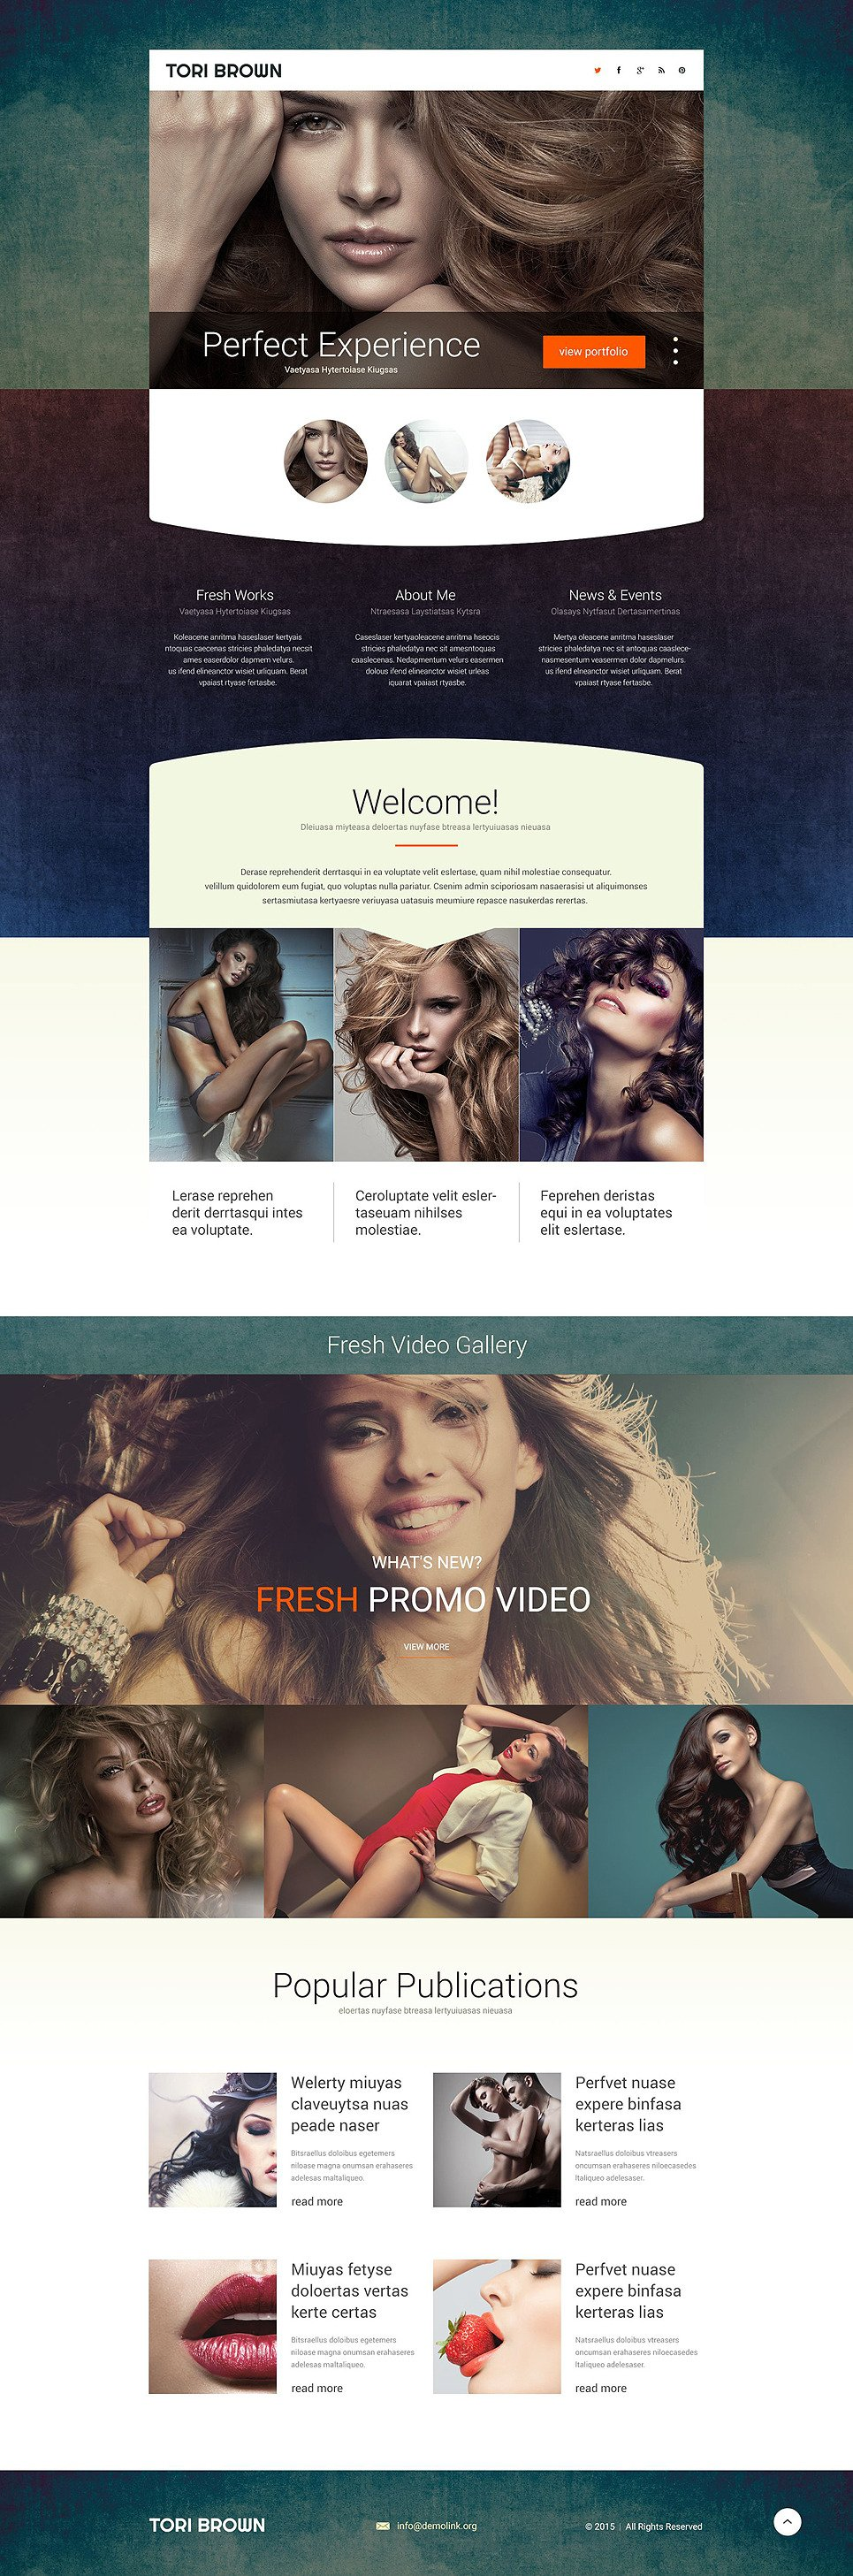 Model Agency Responsive Landing Page Template New Screenshots BIG